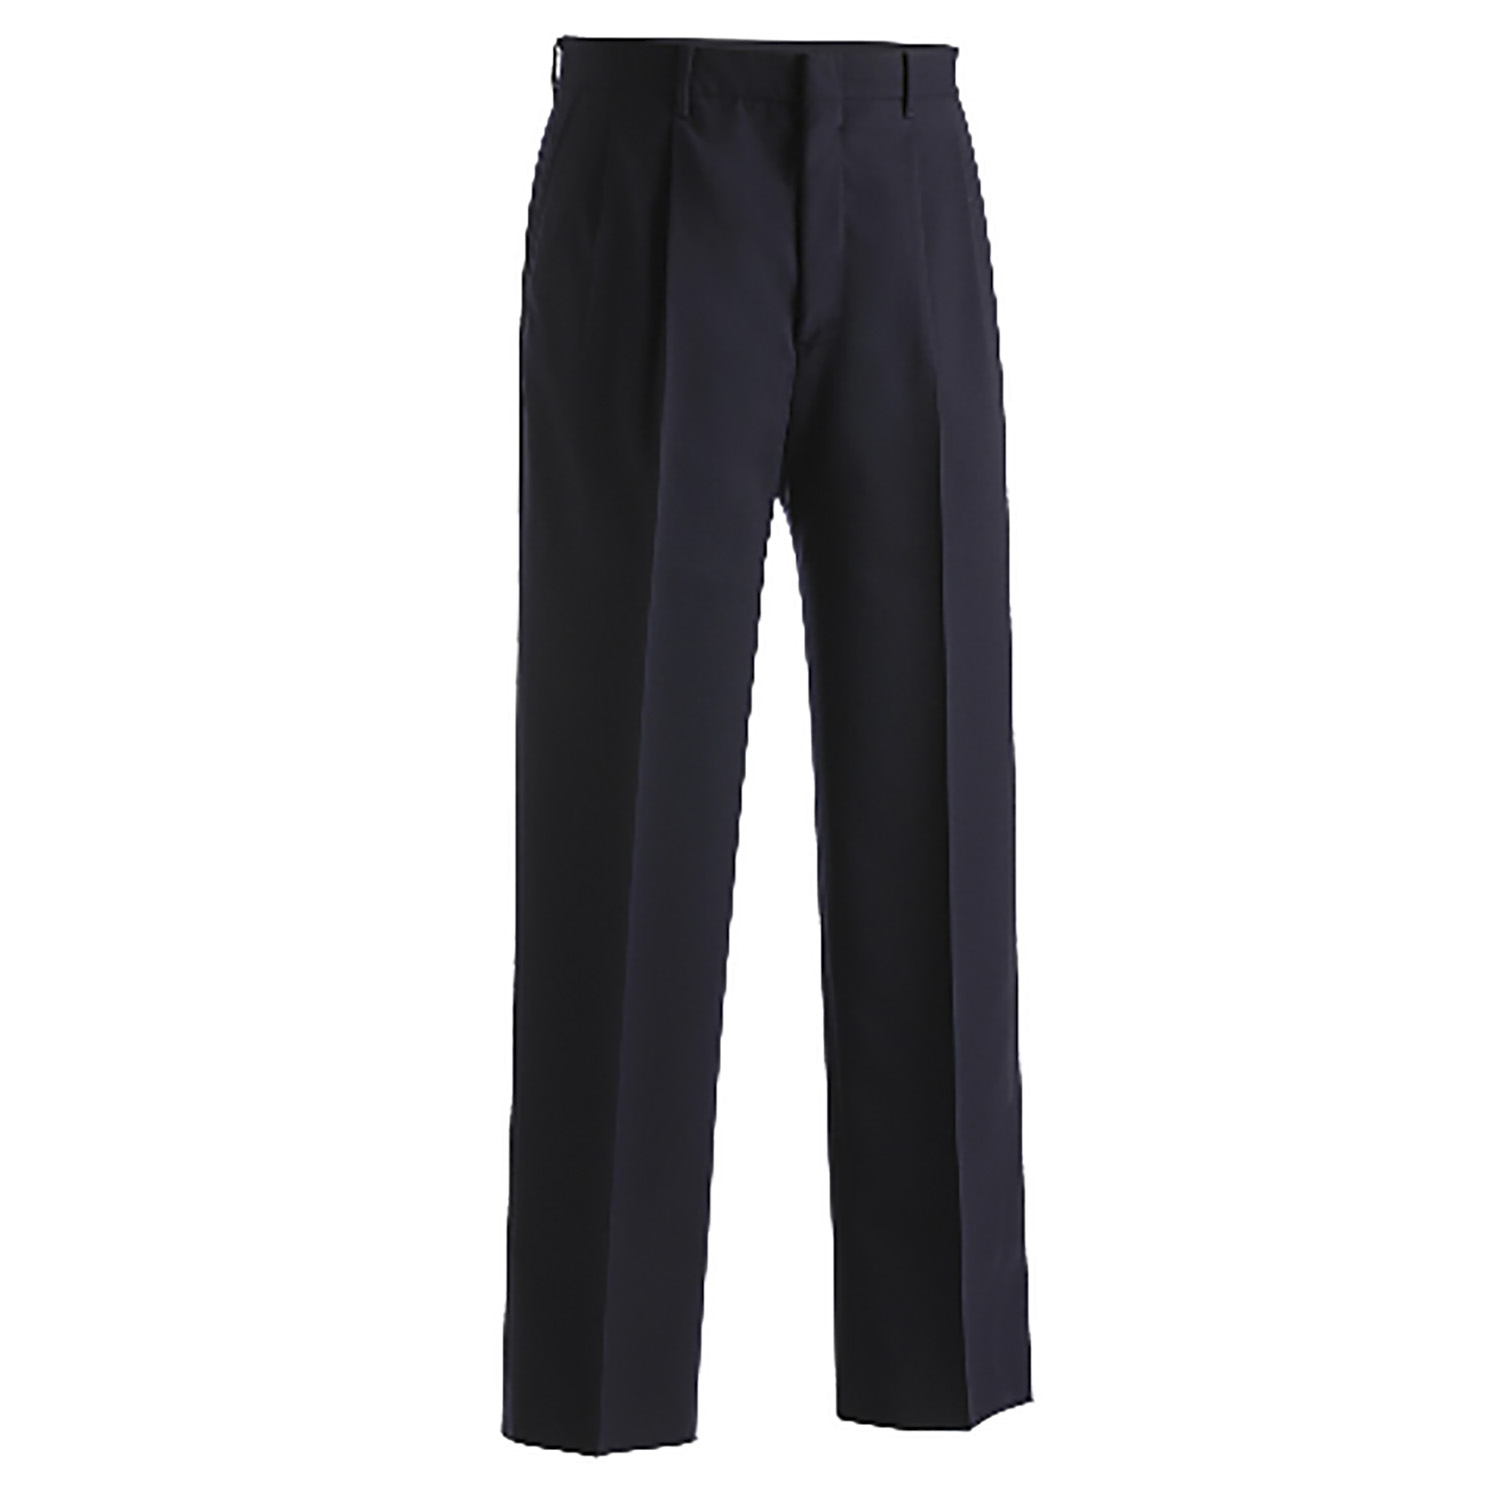 Edward's Garement Men's Wool Blend Pleated Dress Pants